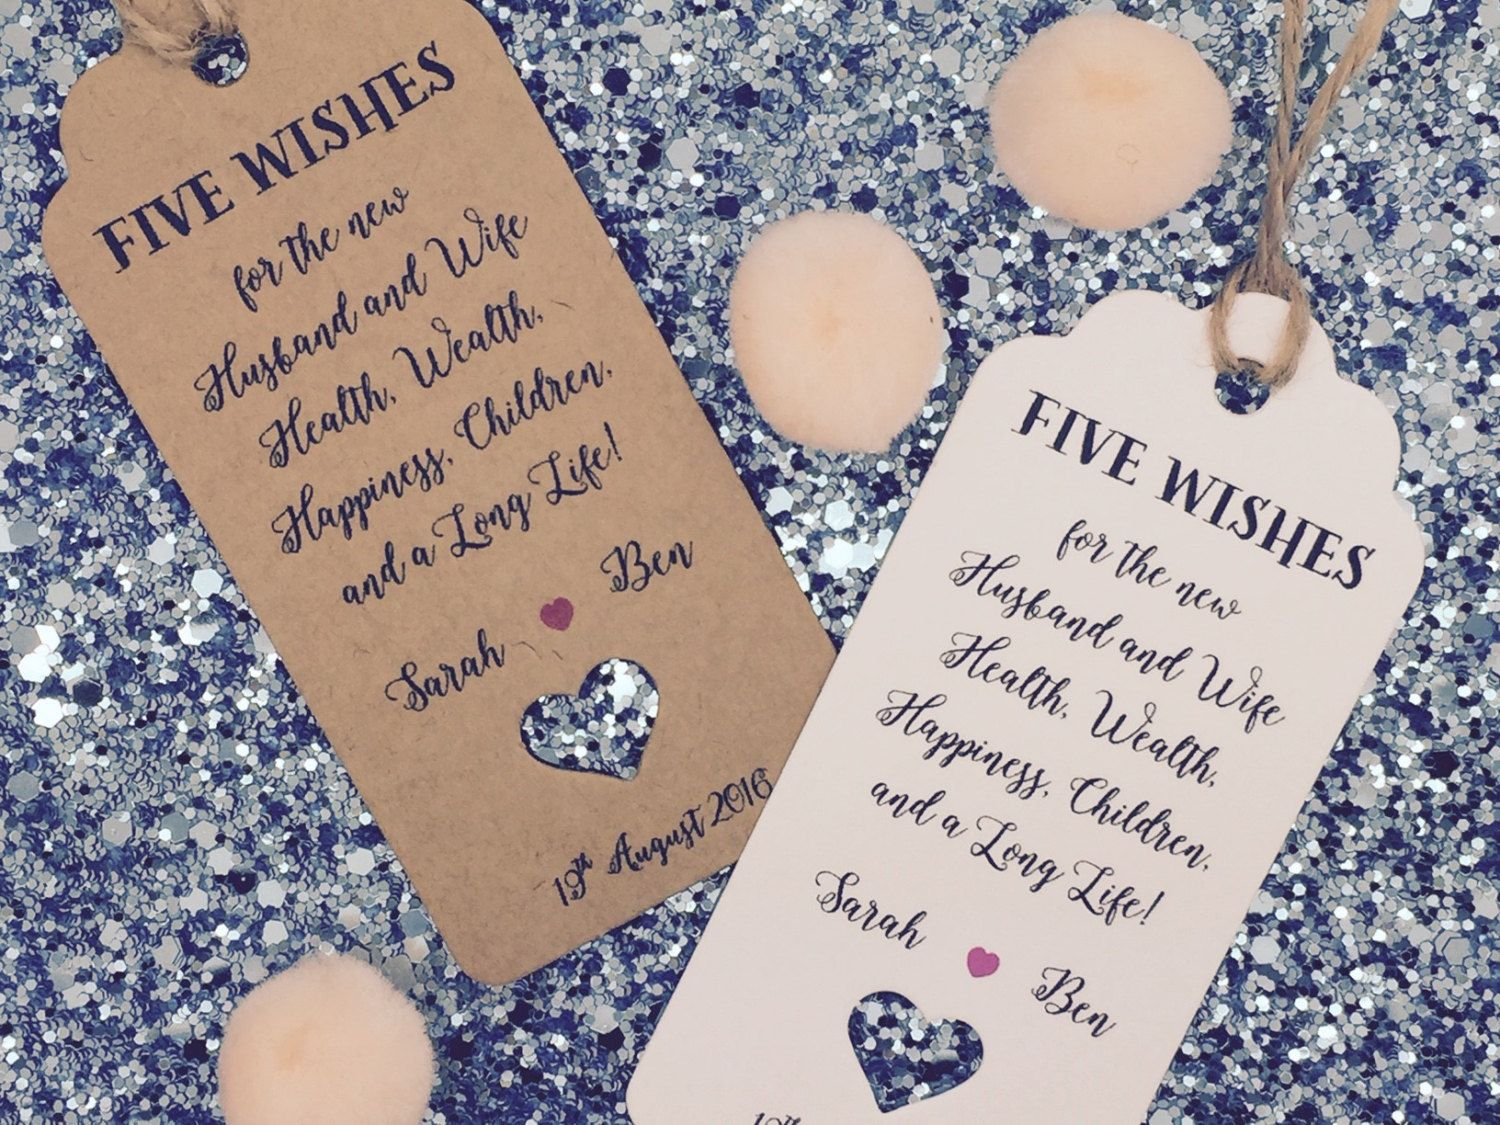 Gift Tag For Sugared Almond Wedding Favour Poem Traditional Italian Favours Weddingfavortags Save The Date Chalkboard Invite Rustic Calendar